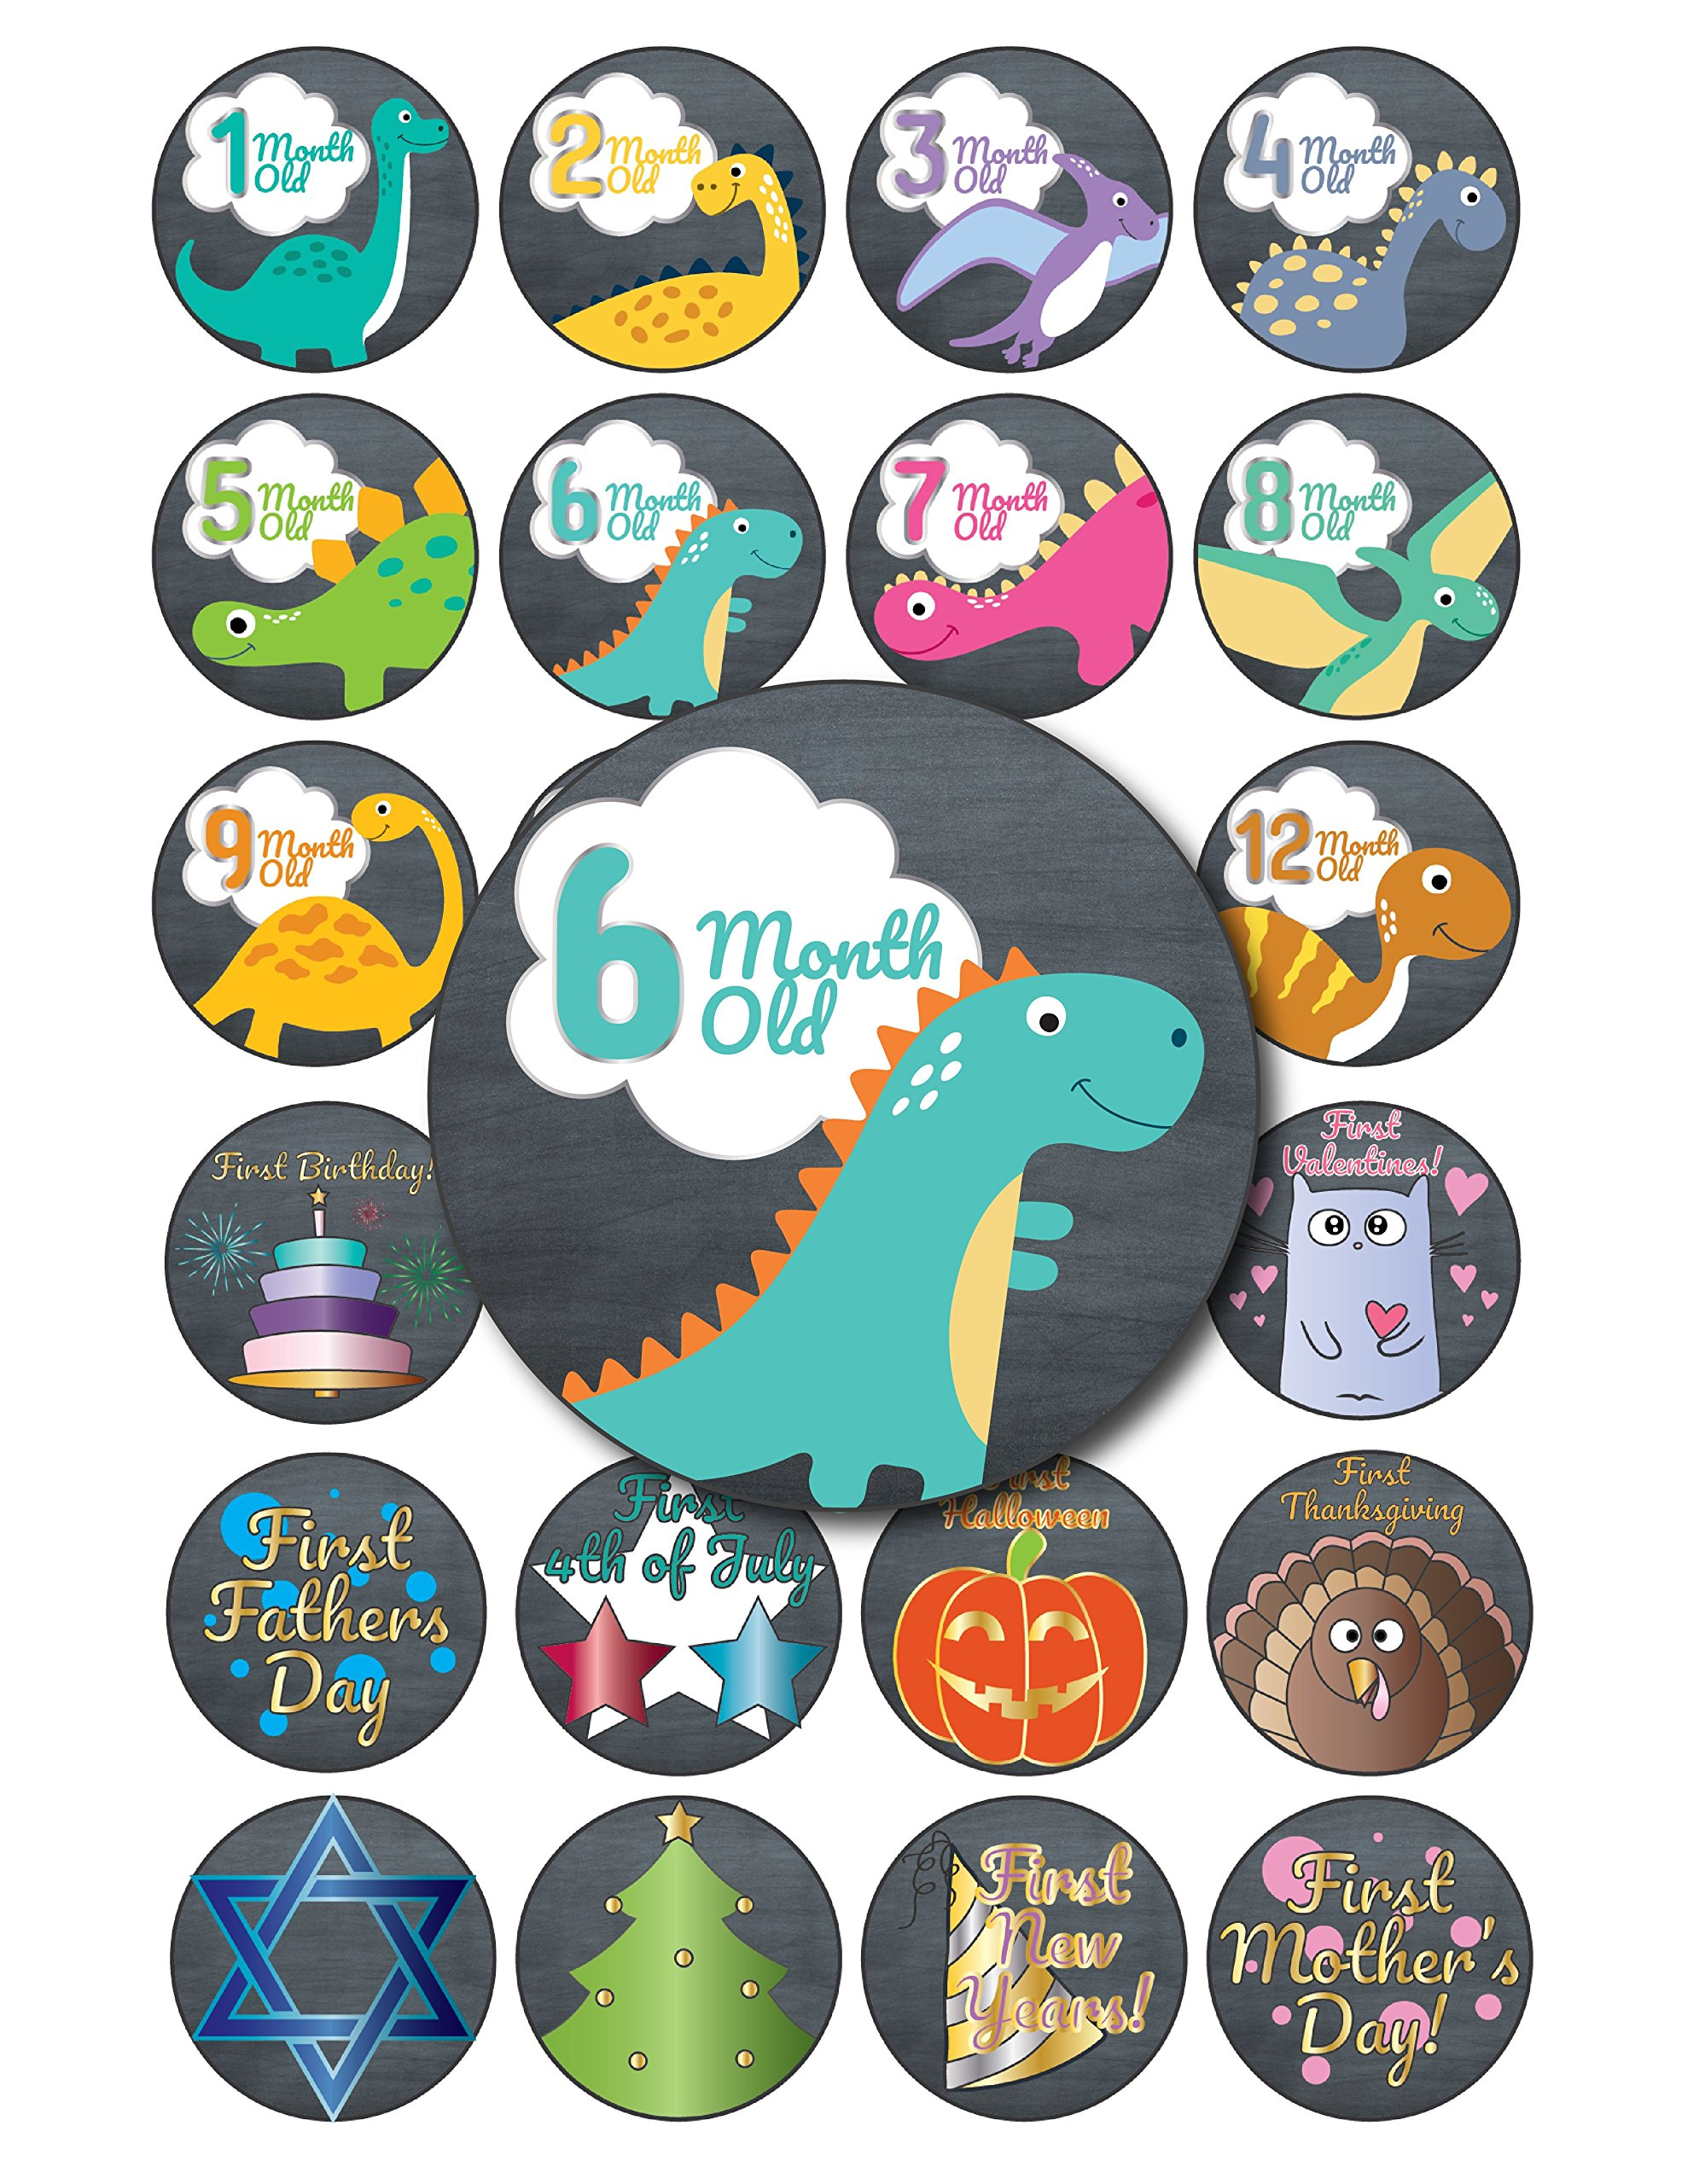 Rustic Pastel Dinosaur Baby Monthly Stickers, 24-Pack 4 inch 12 Monthly 1st Year Milestones & First Holidays Premium Baby Belly Stickers, Mom to Be or Dad to Be Gifts, Awesome Baby Shower Gifts by L&P Designs